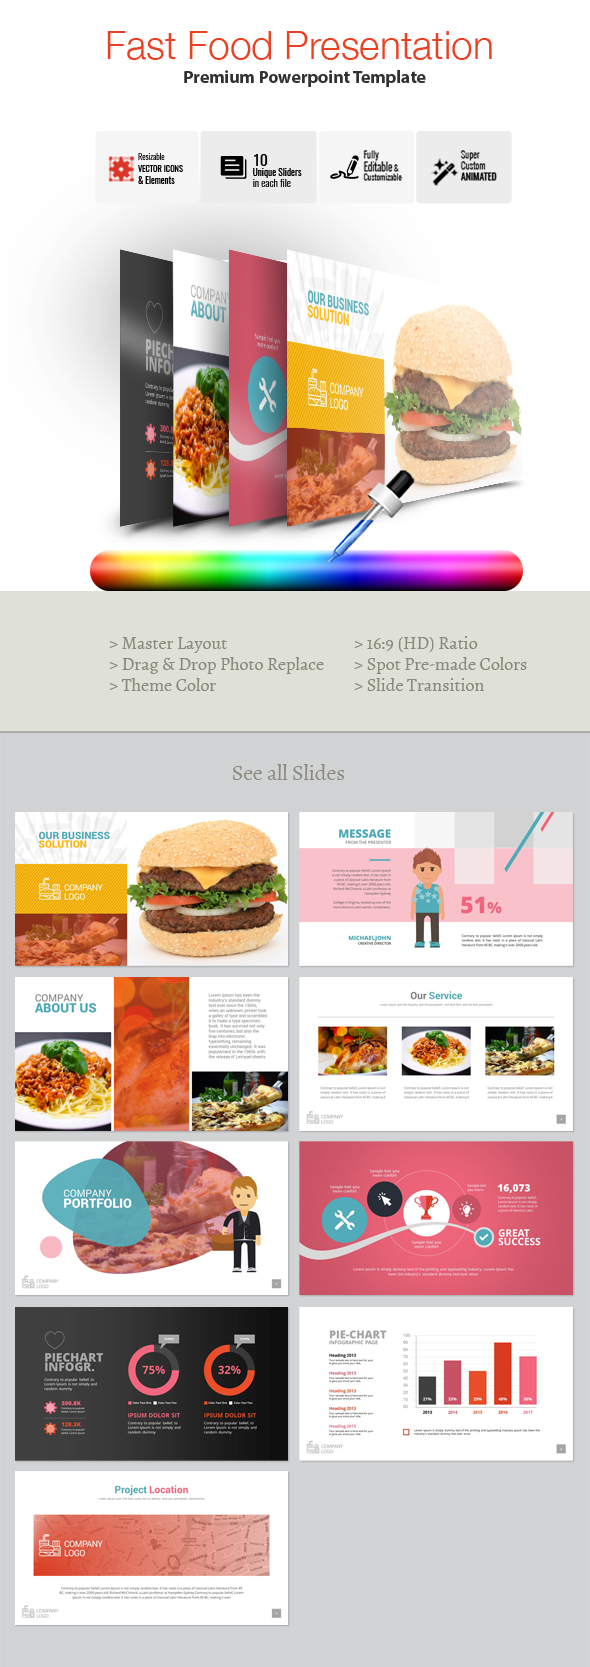 Fast Food Powerpoint Template - Business PowerPoint Templates